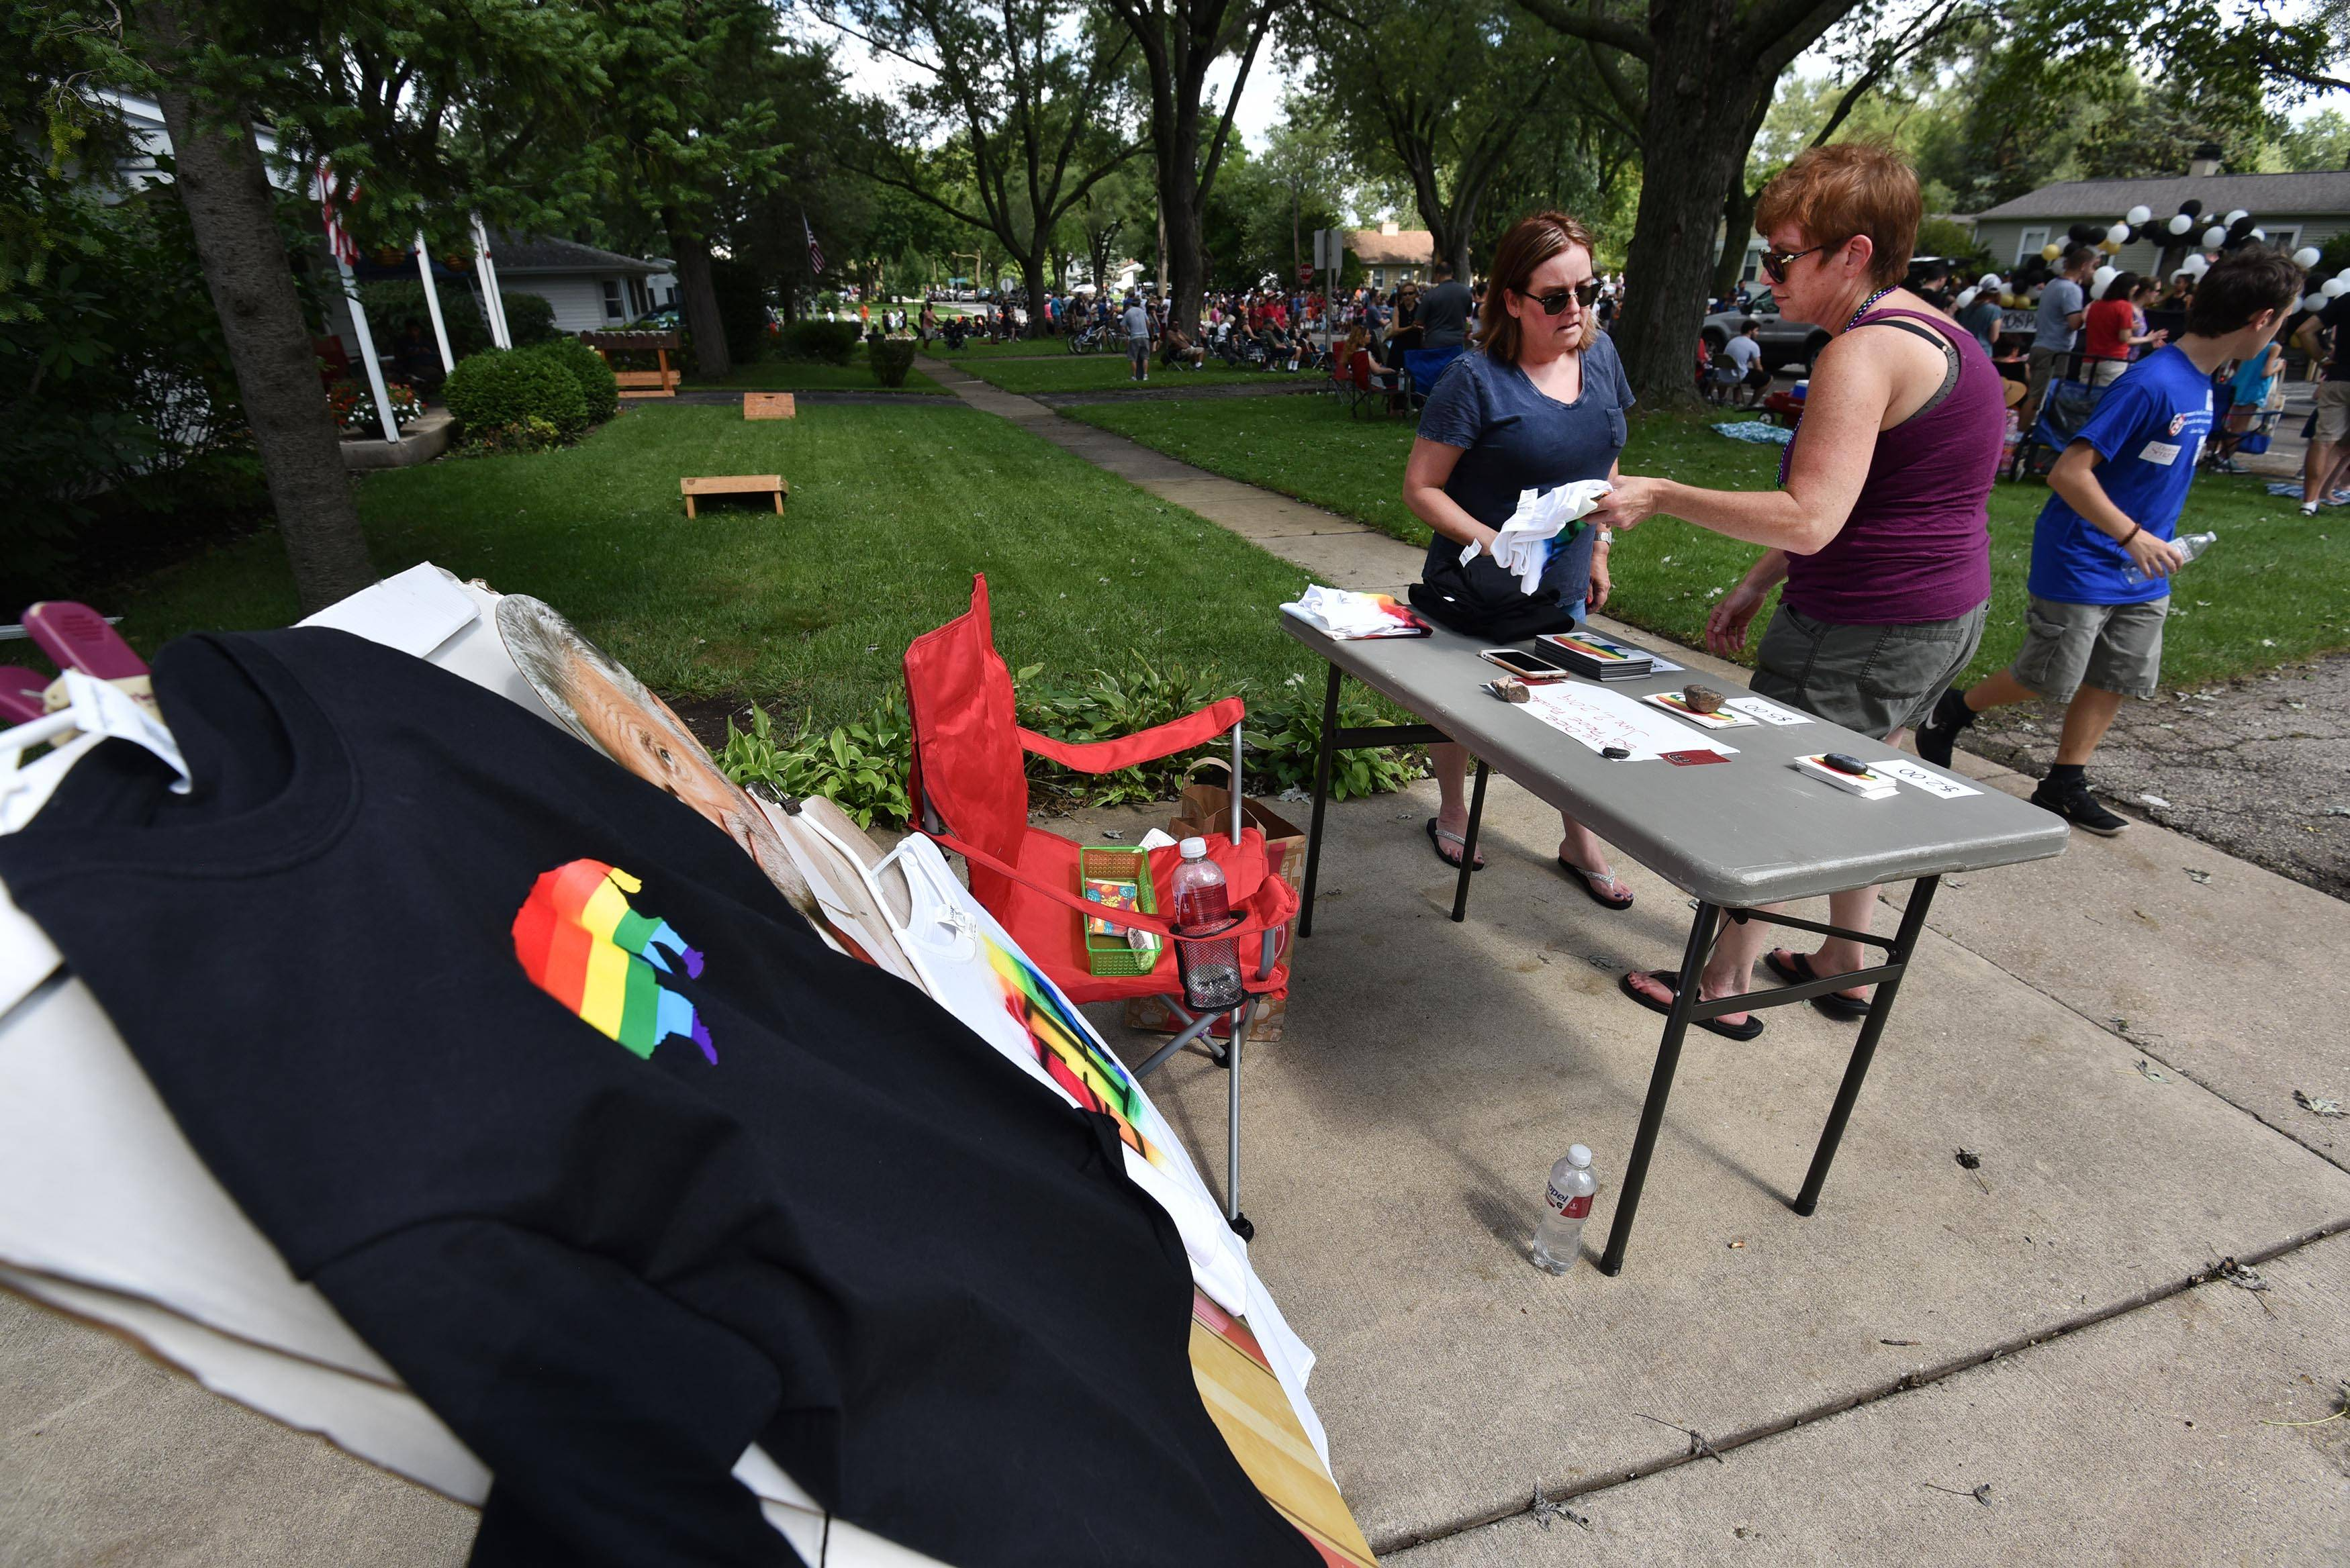 Lori Gayhart, right, shows a neighbor T-shirts for sale that promote the inaugural BG Pride parade, which is scheduled for next year. She and her daughter Grace, 17, were selling several items Sunday to help fund the pride parade effort at the Buffalo Grove Days parade.